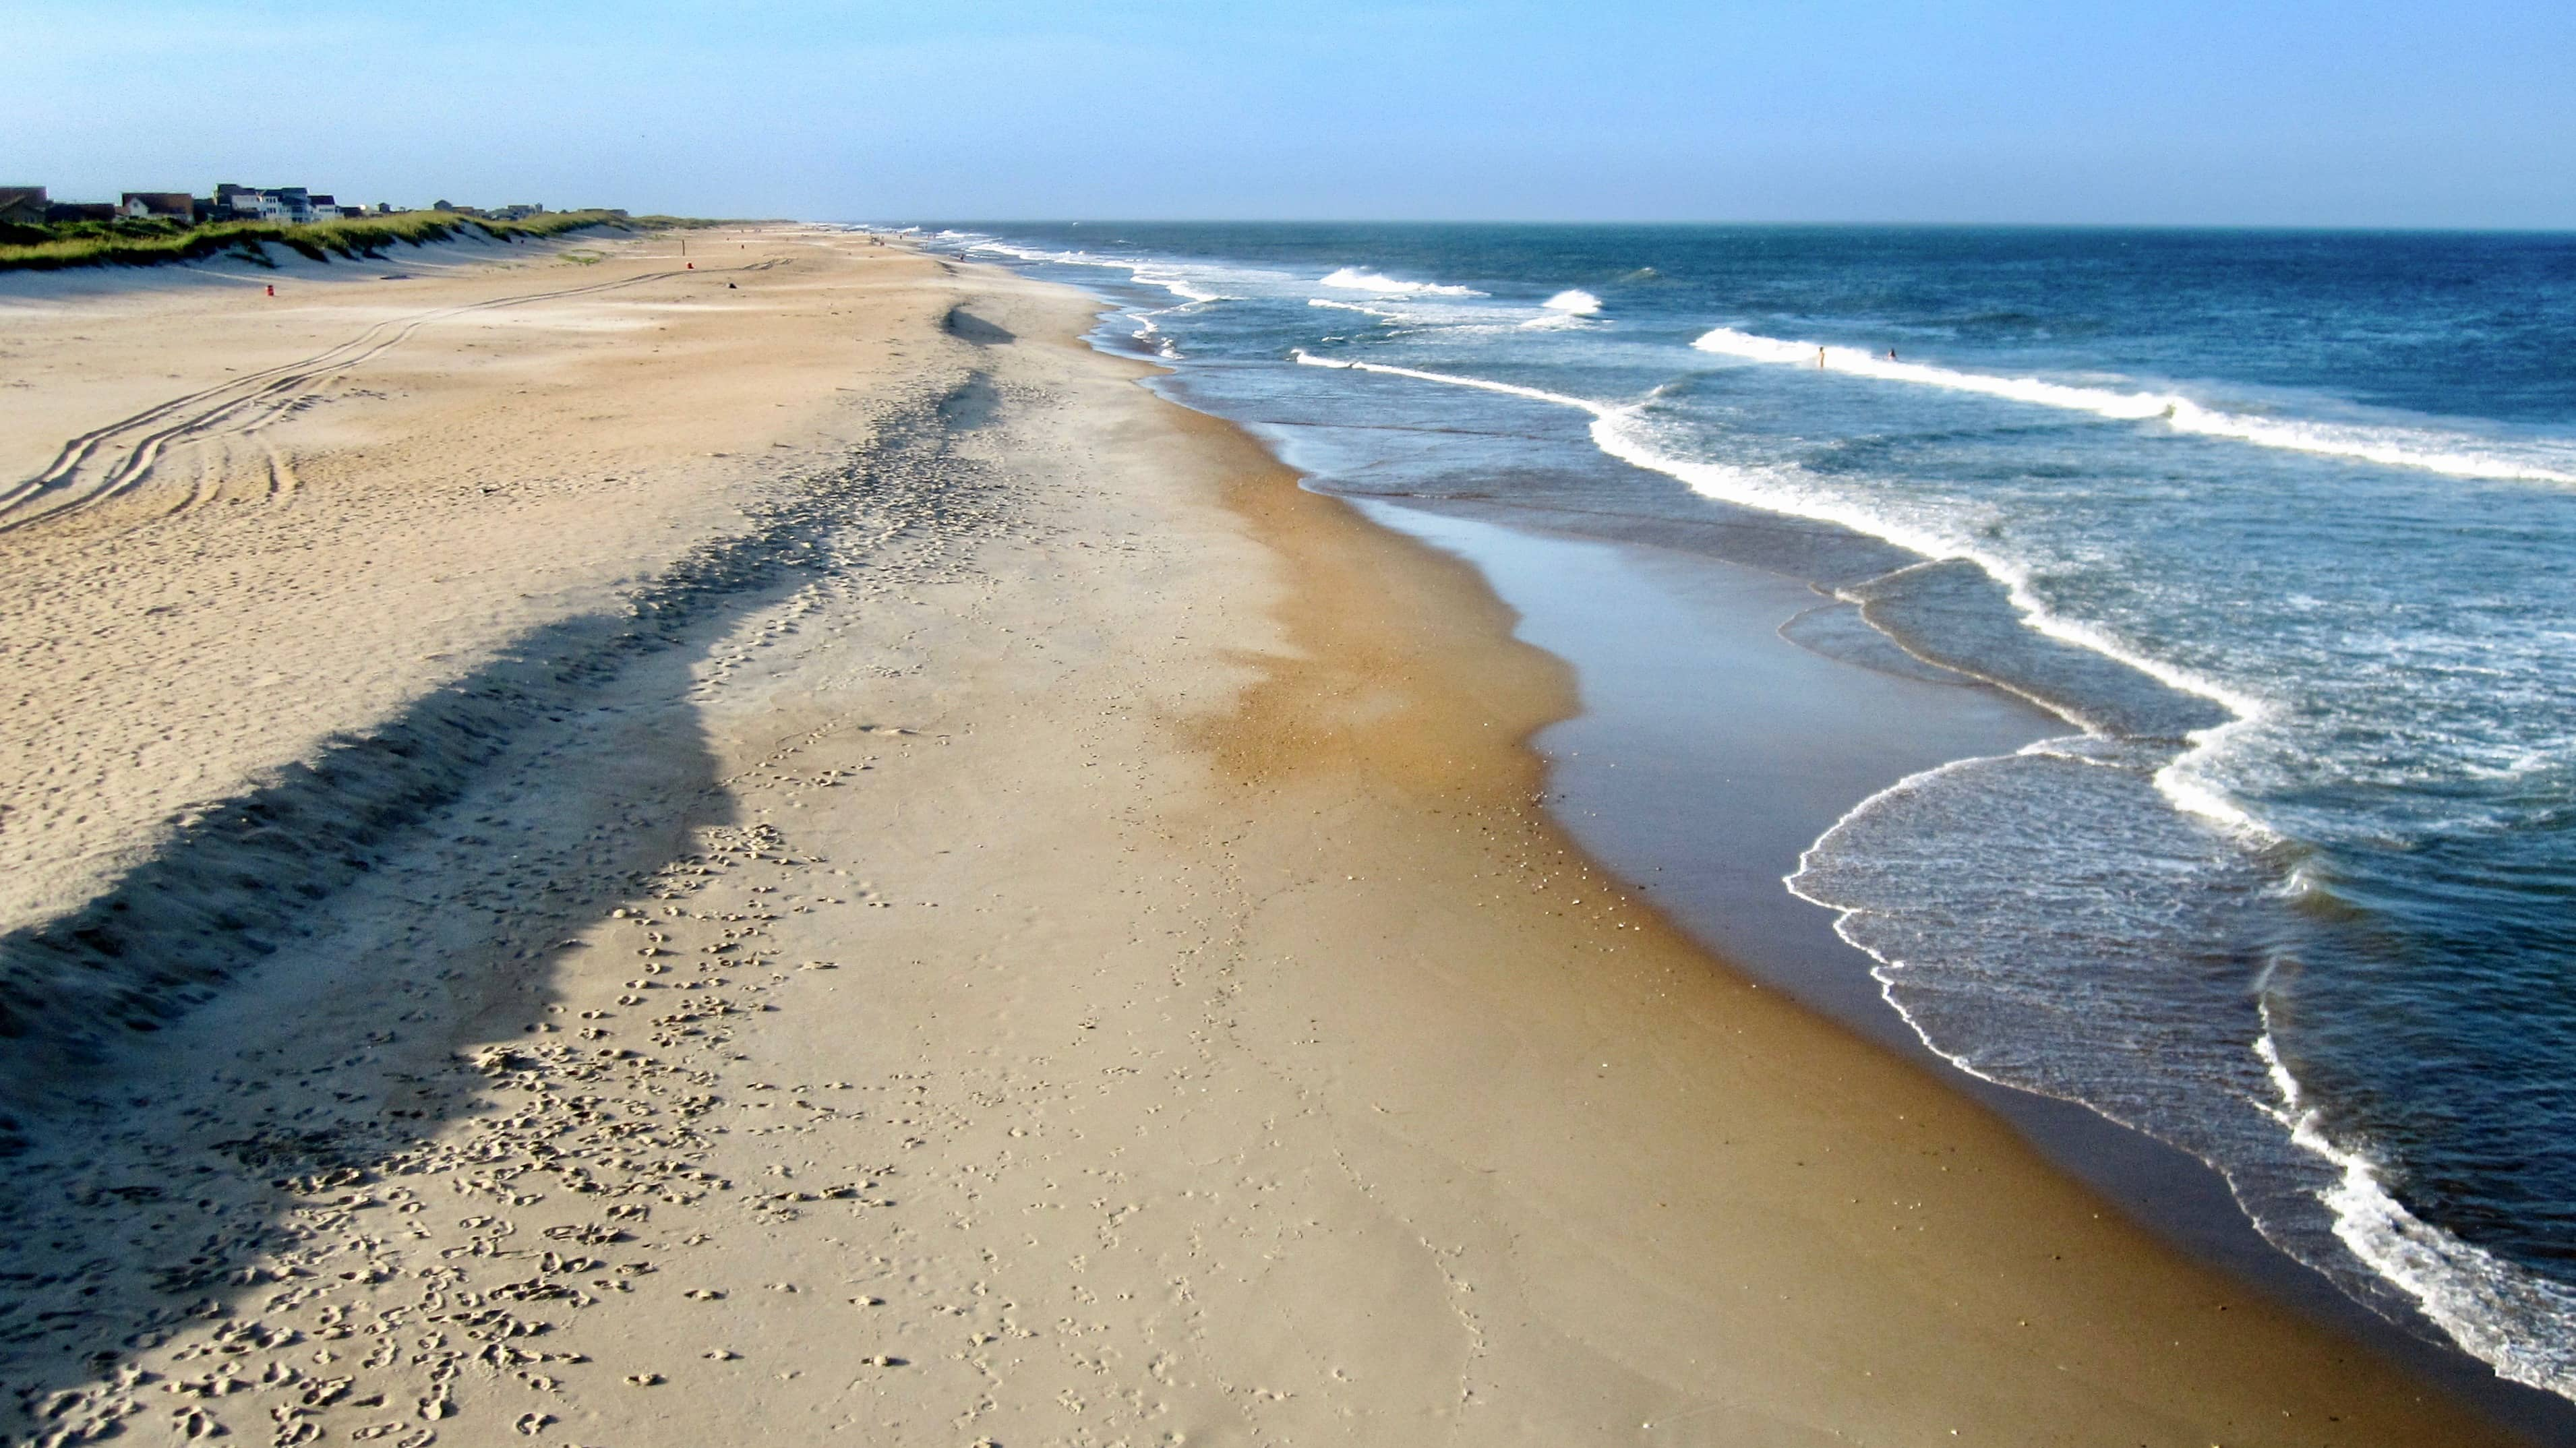 ocean and beach at Outer Banks, NC